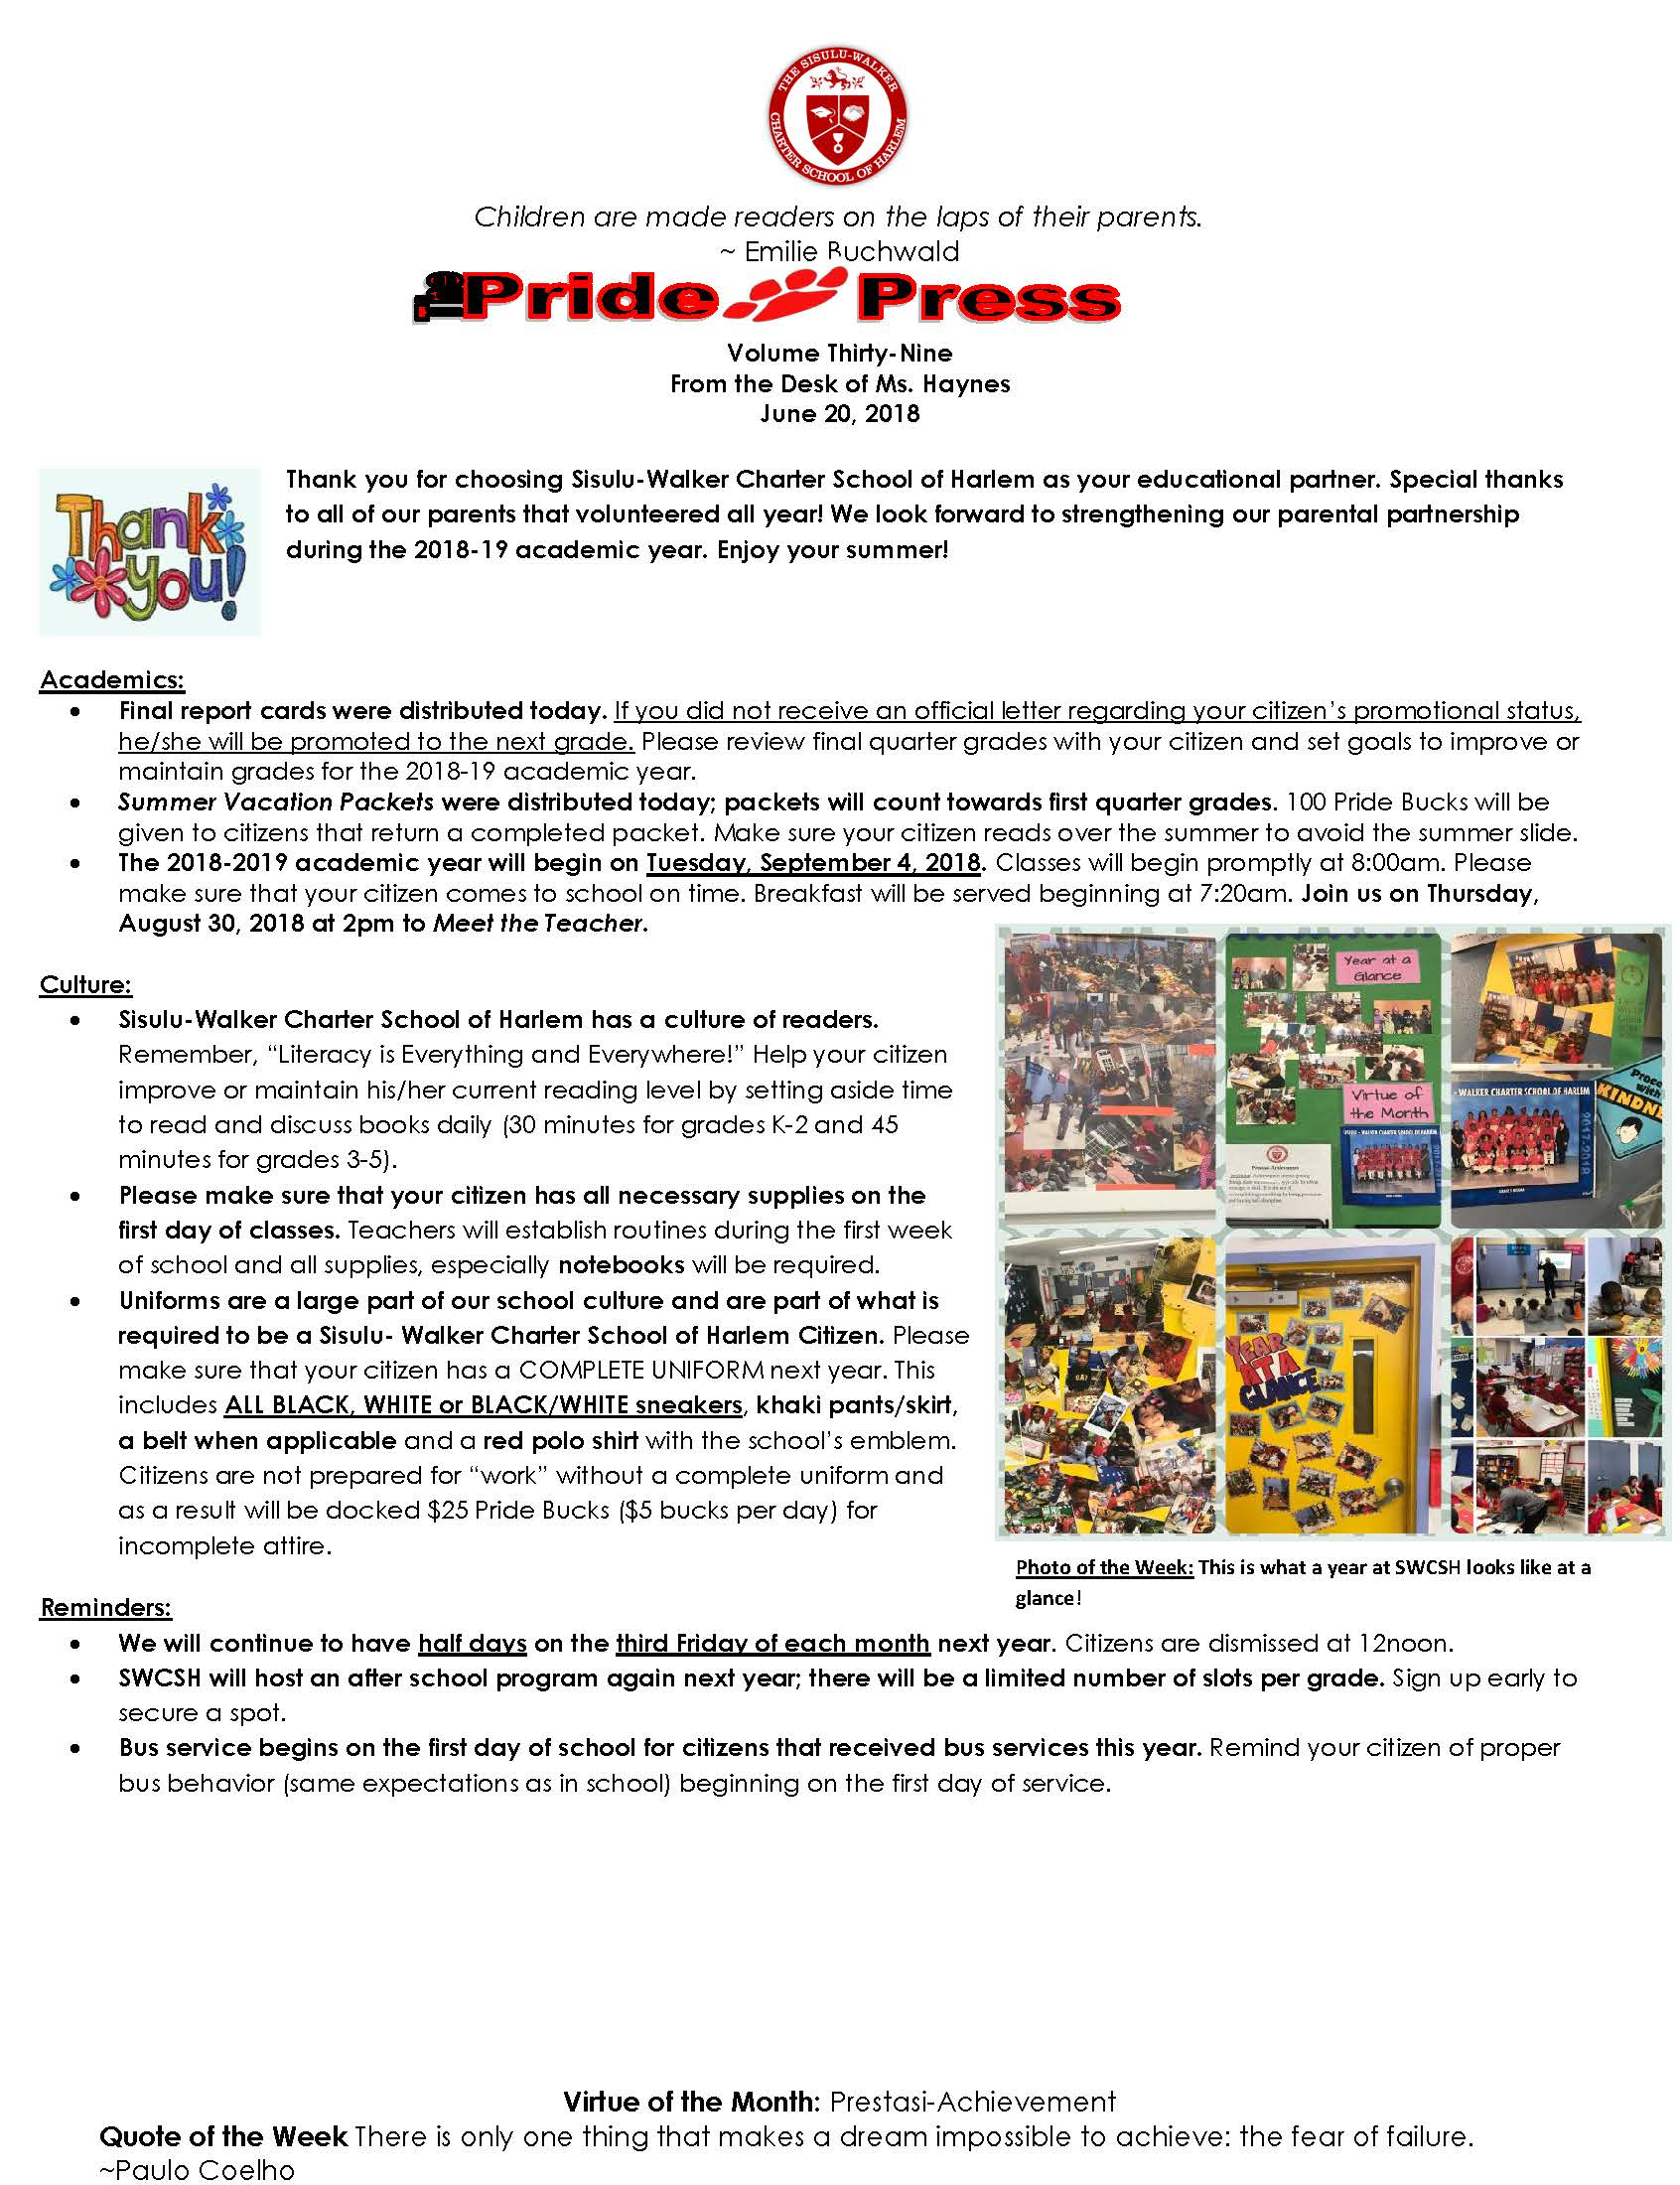 Vol Charter Swcsh Pride Press Vol 39 Sisulu Walker